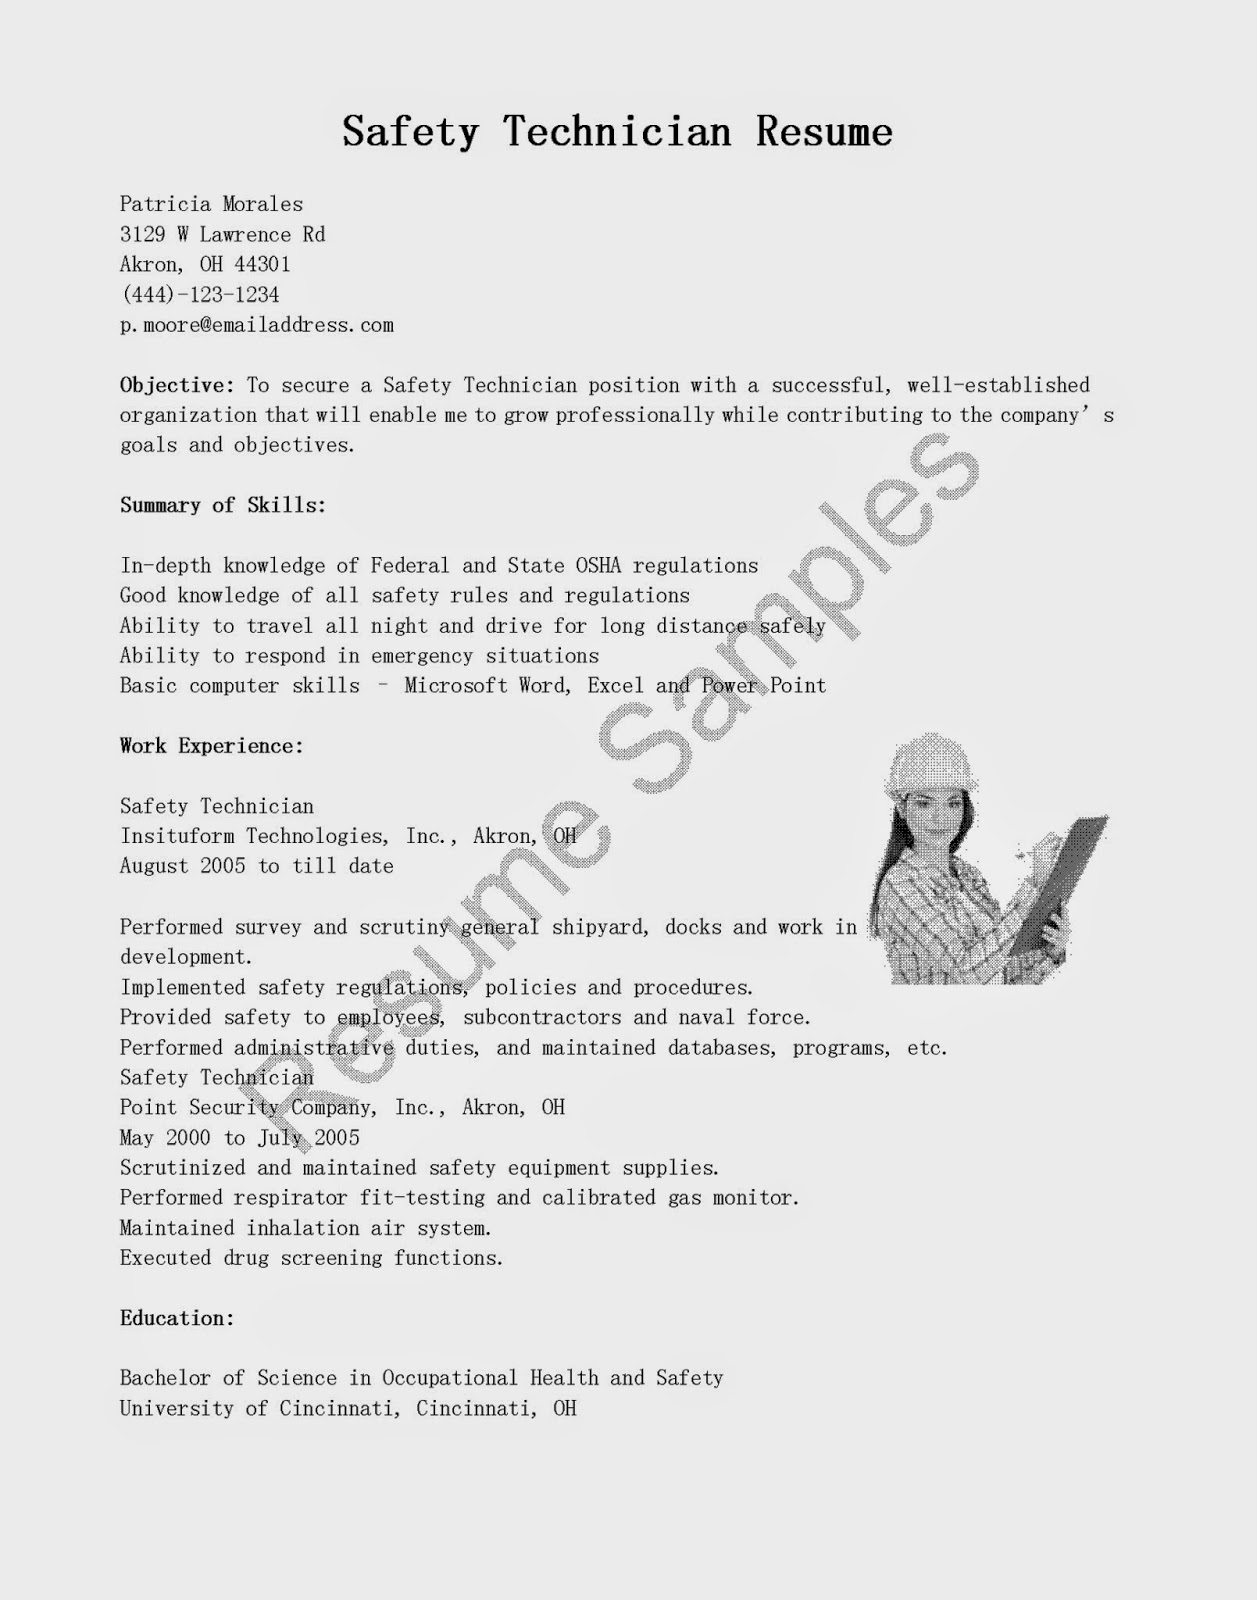 resume sample for older workers resume maker create resume sample for older workers resume samples safety technician resume sample